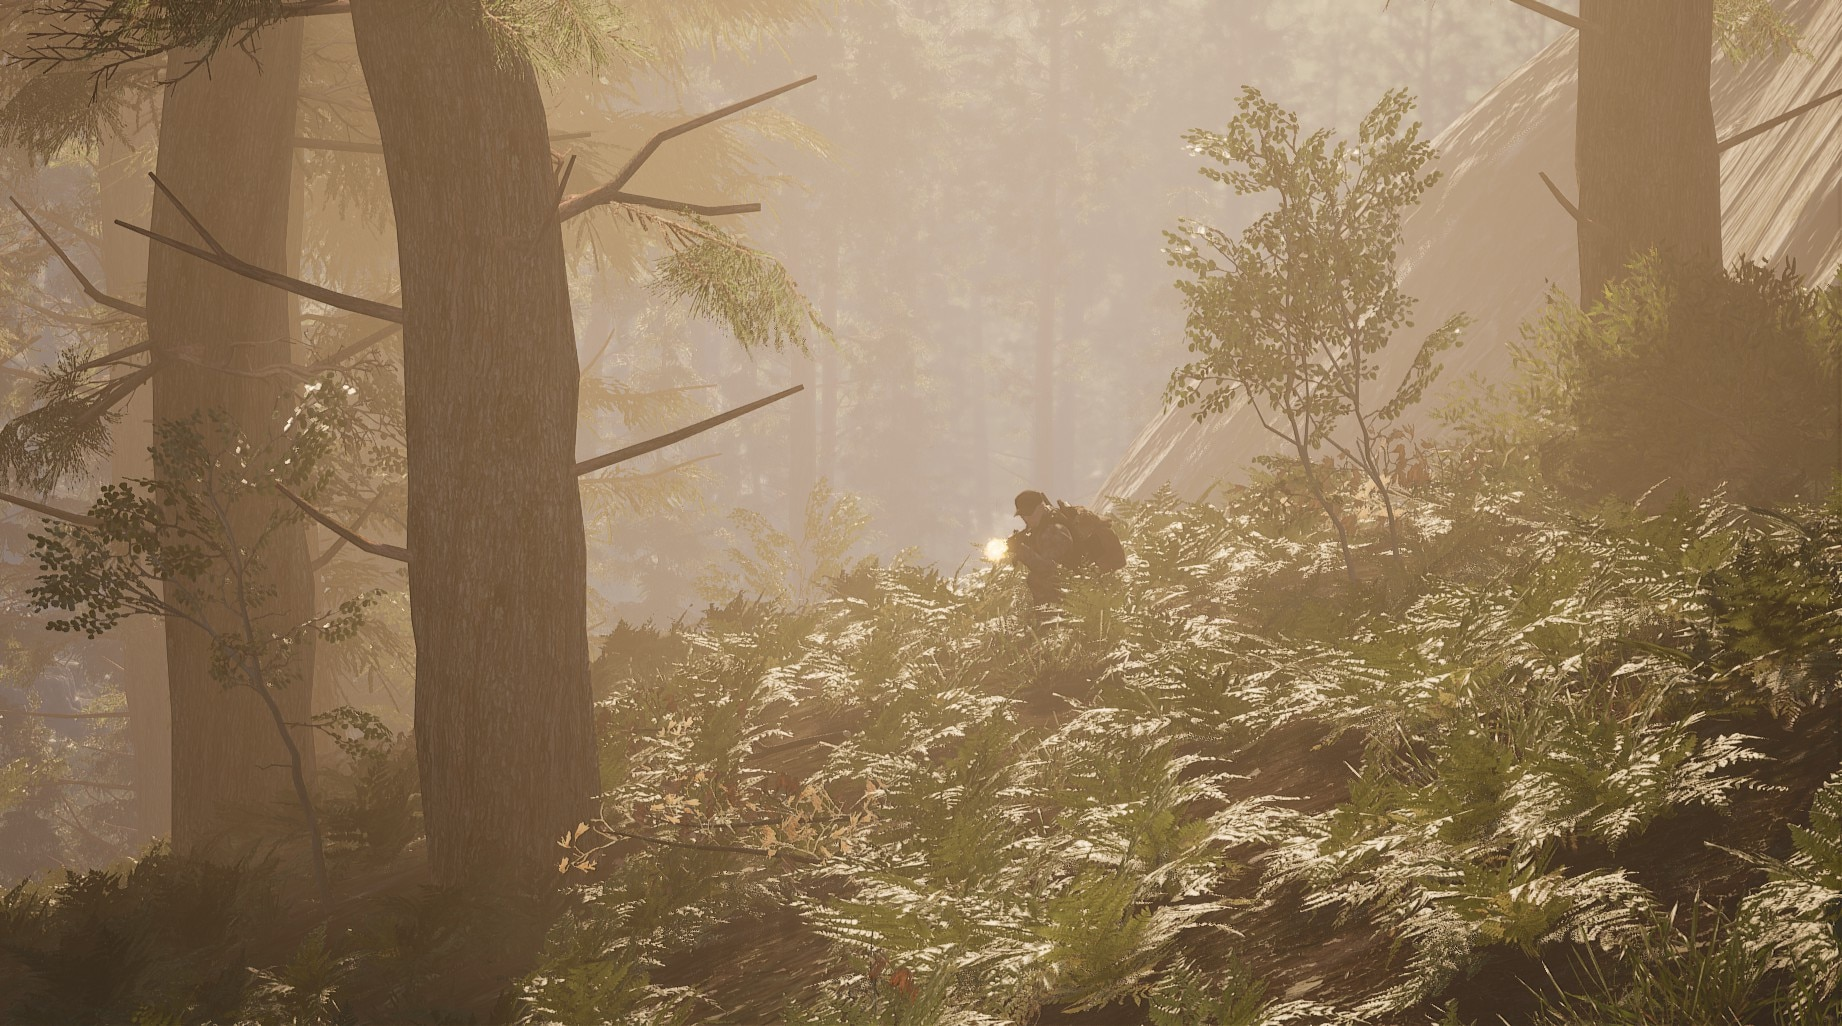 SCUM Hazy Forest - SCUM Is An Insane Game Made By Croatian Madmen